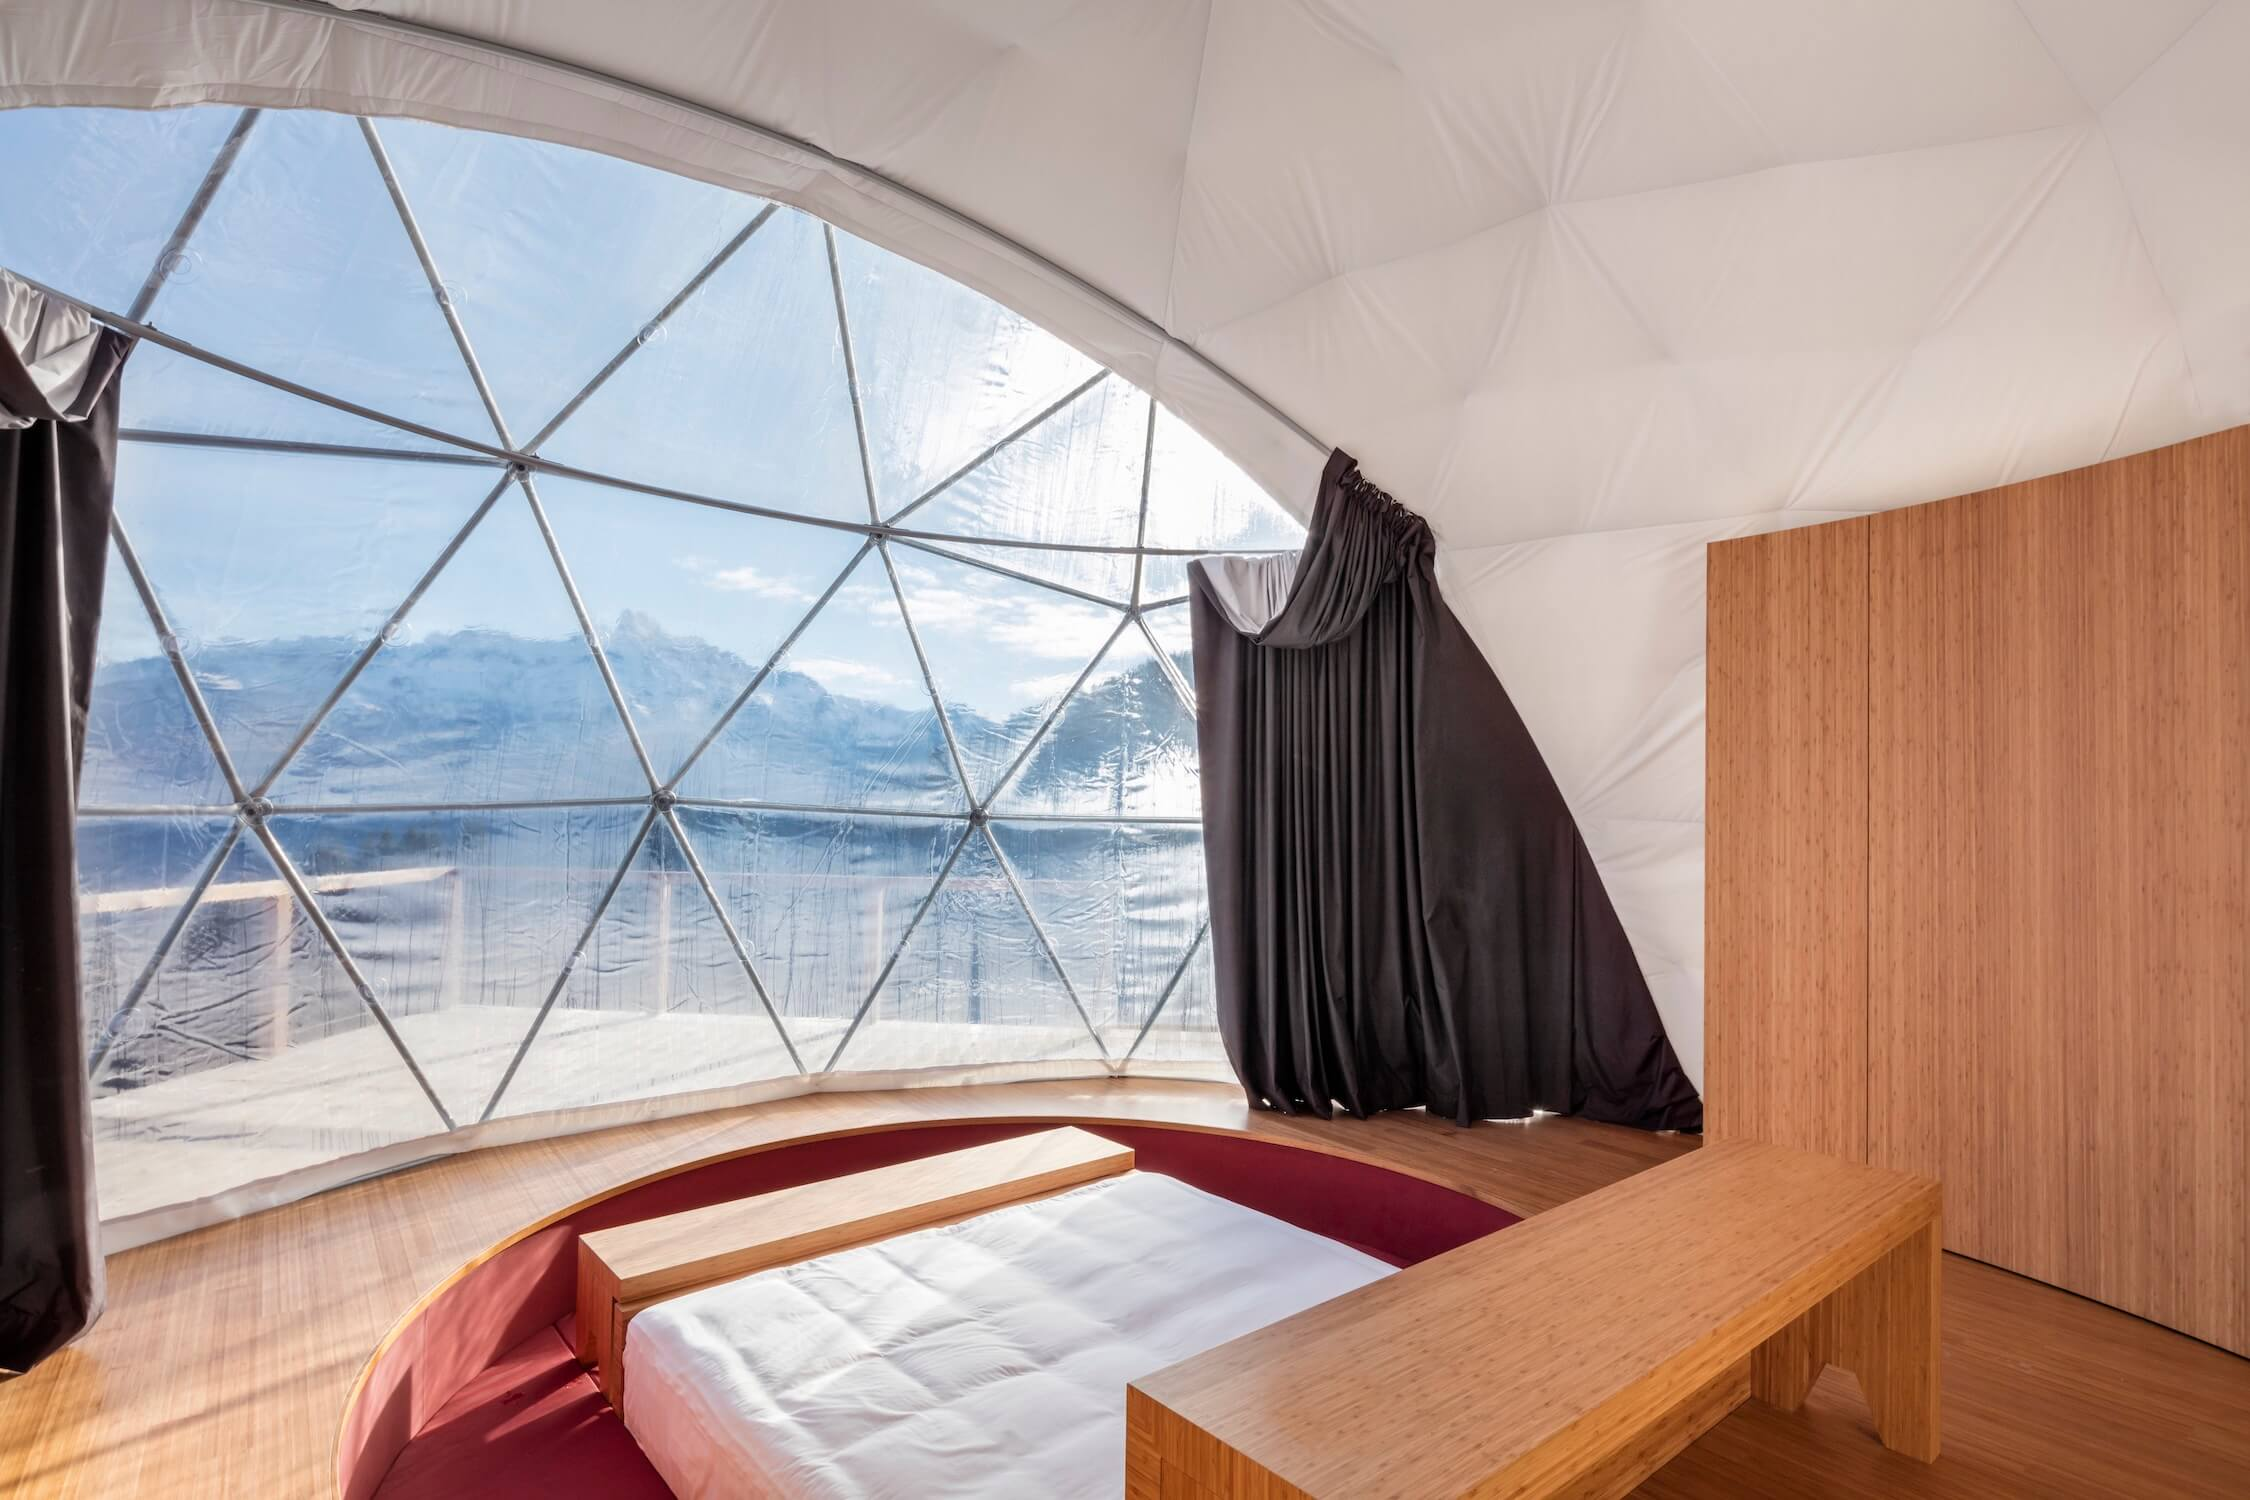 Whitepod Hotel, Zen Suite, glamping, luxury camping